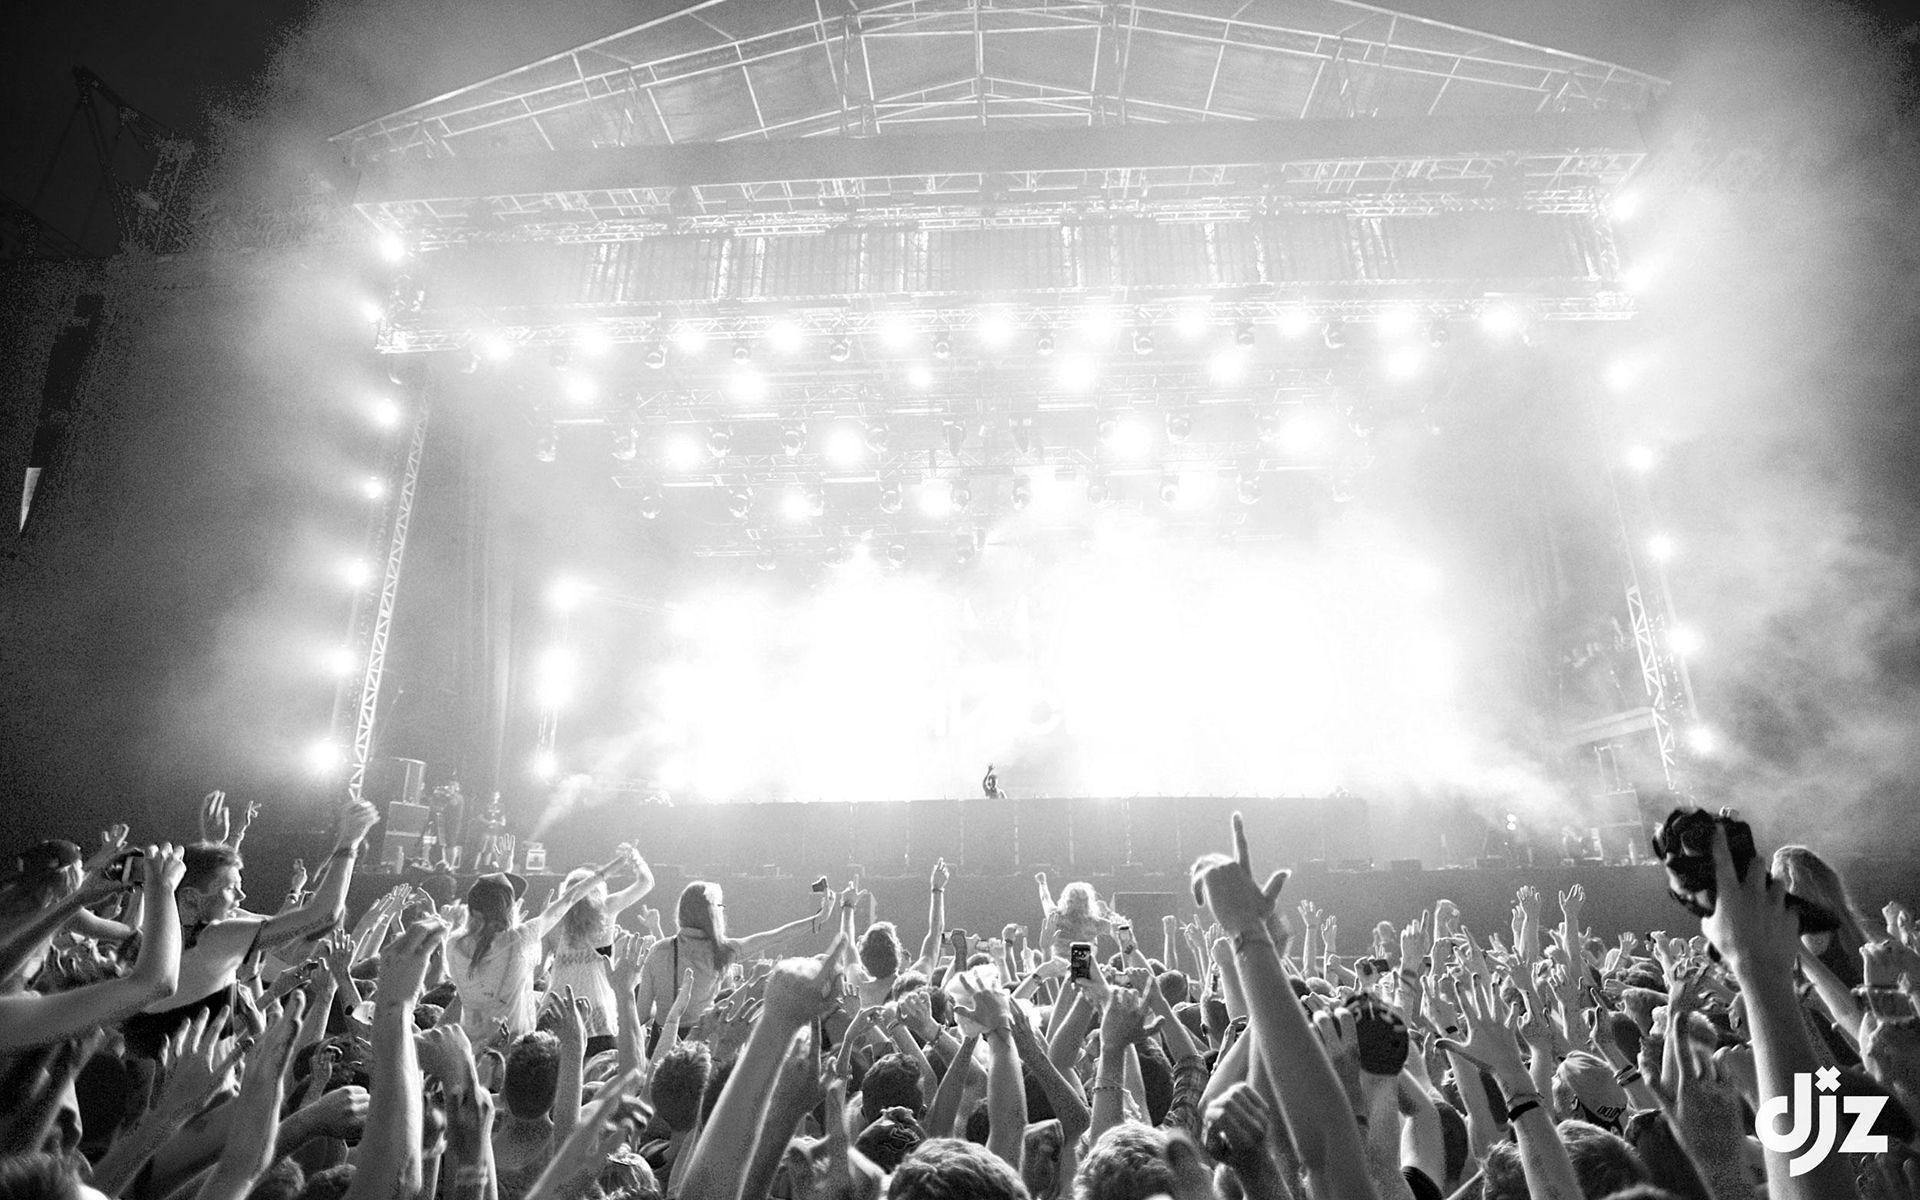 edm concert background - photo #32